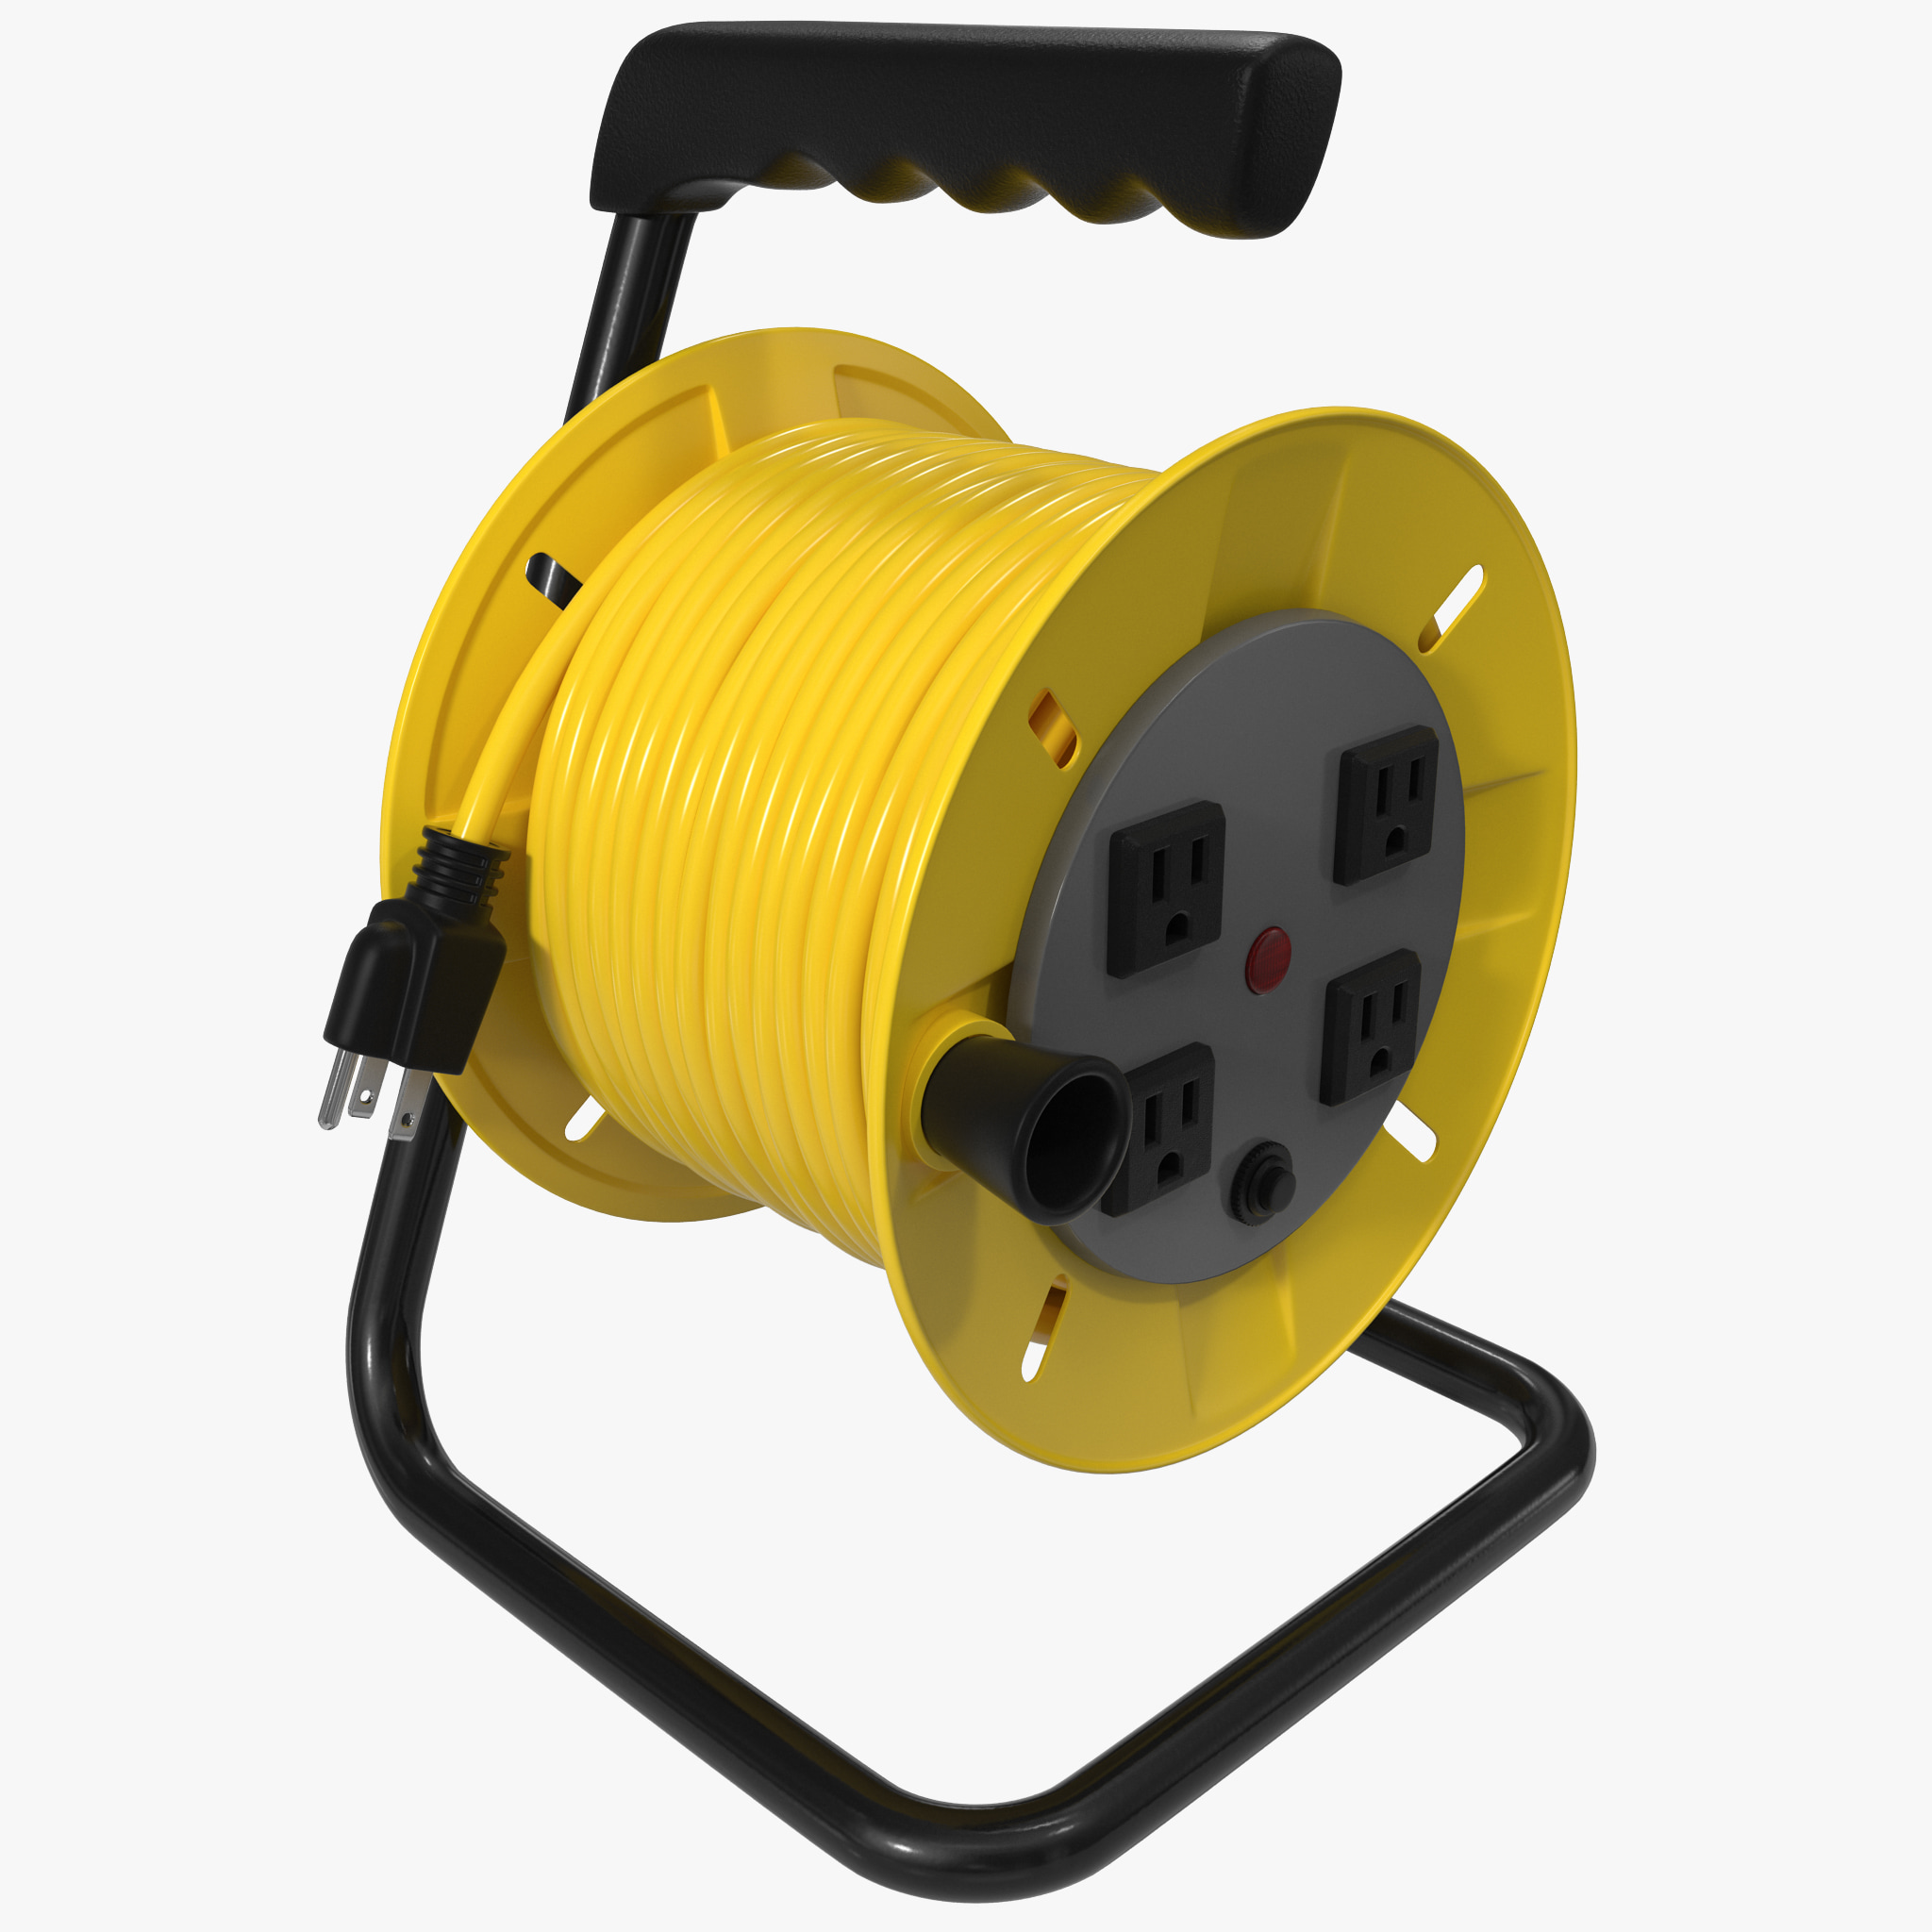 No Extension Cords : Max extension cord reel